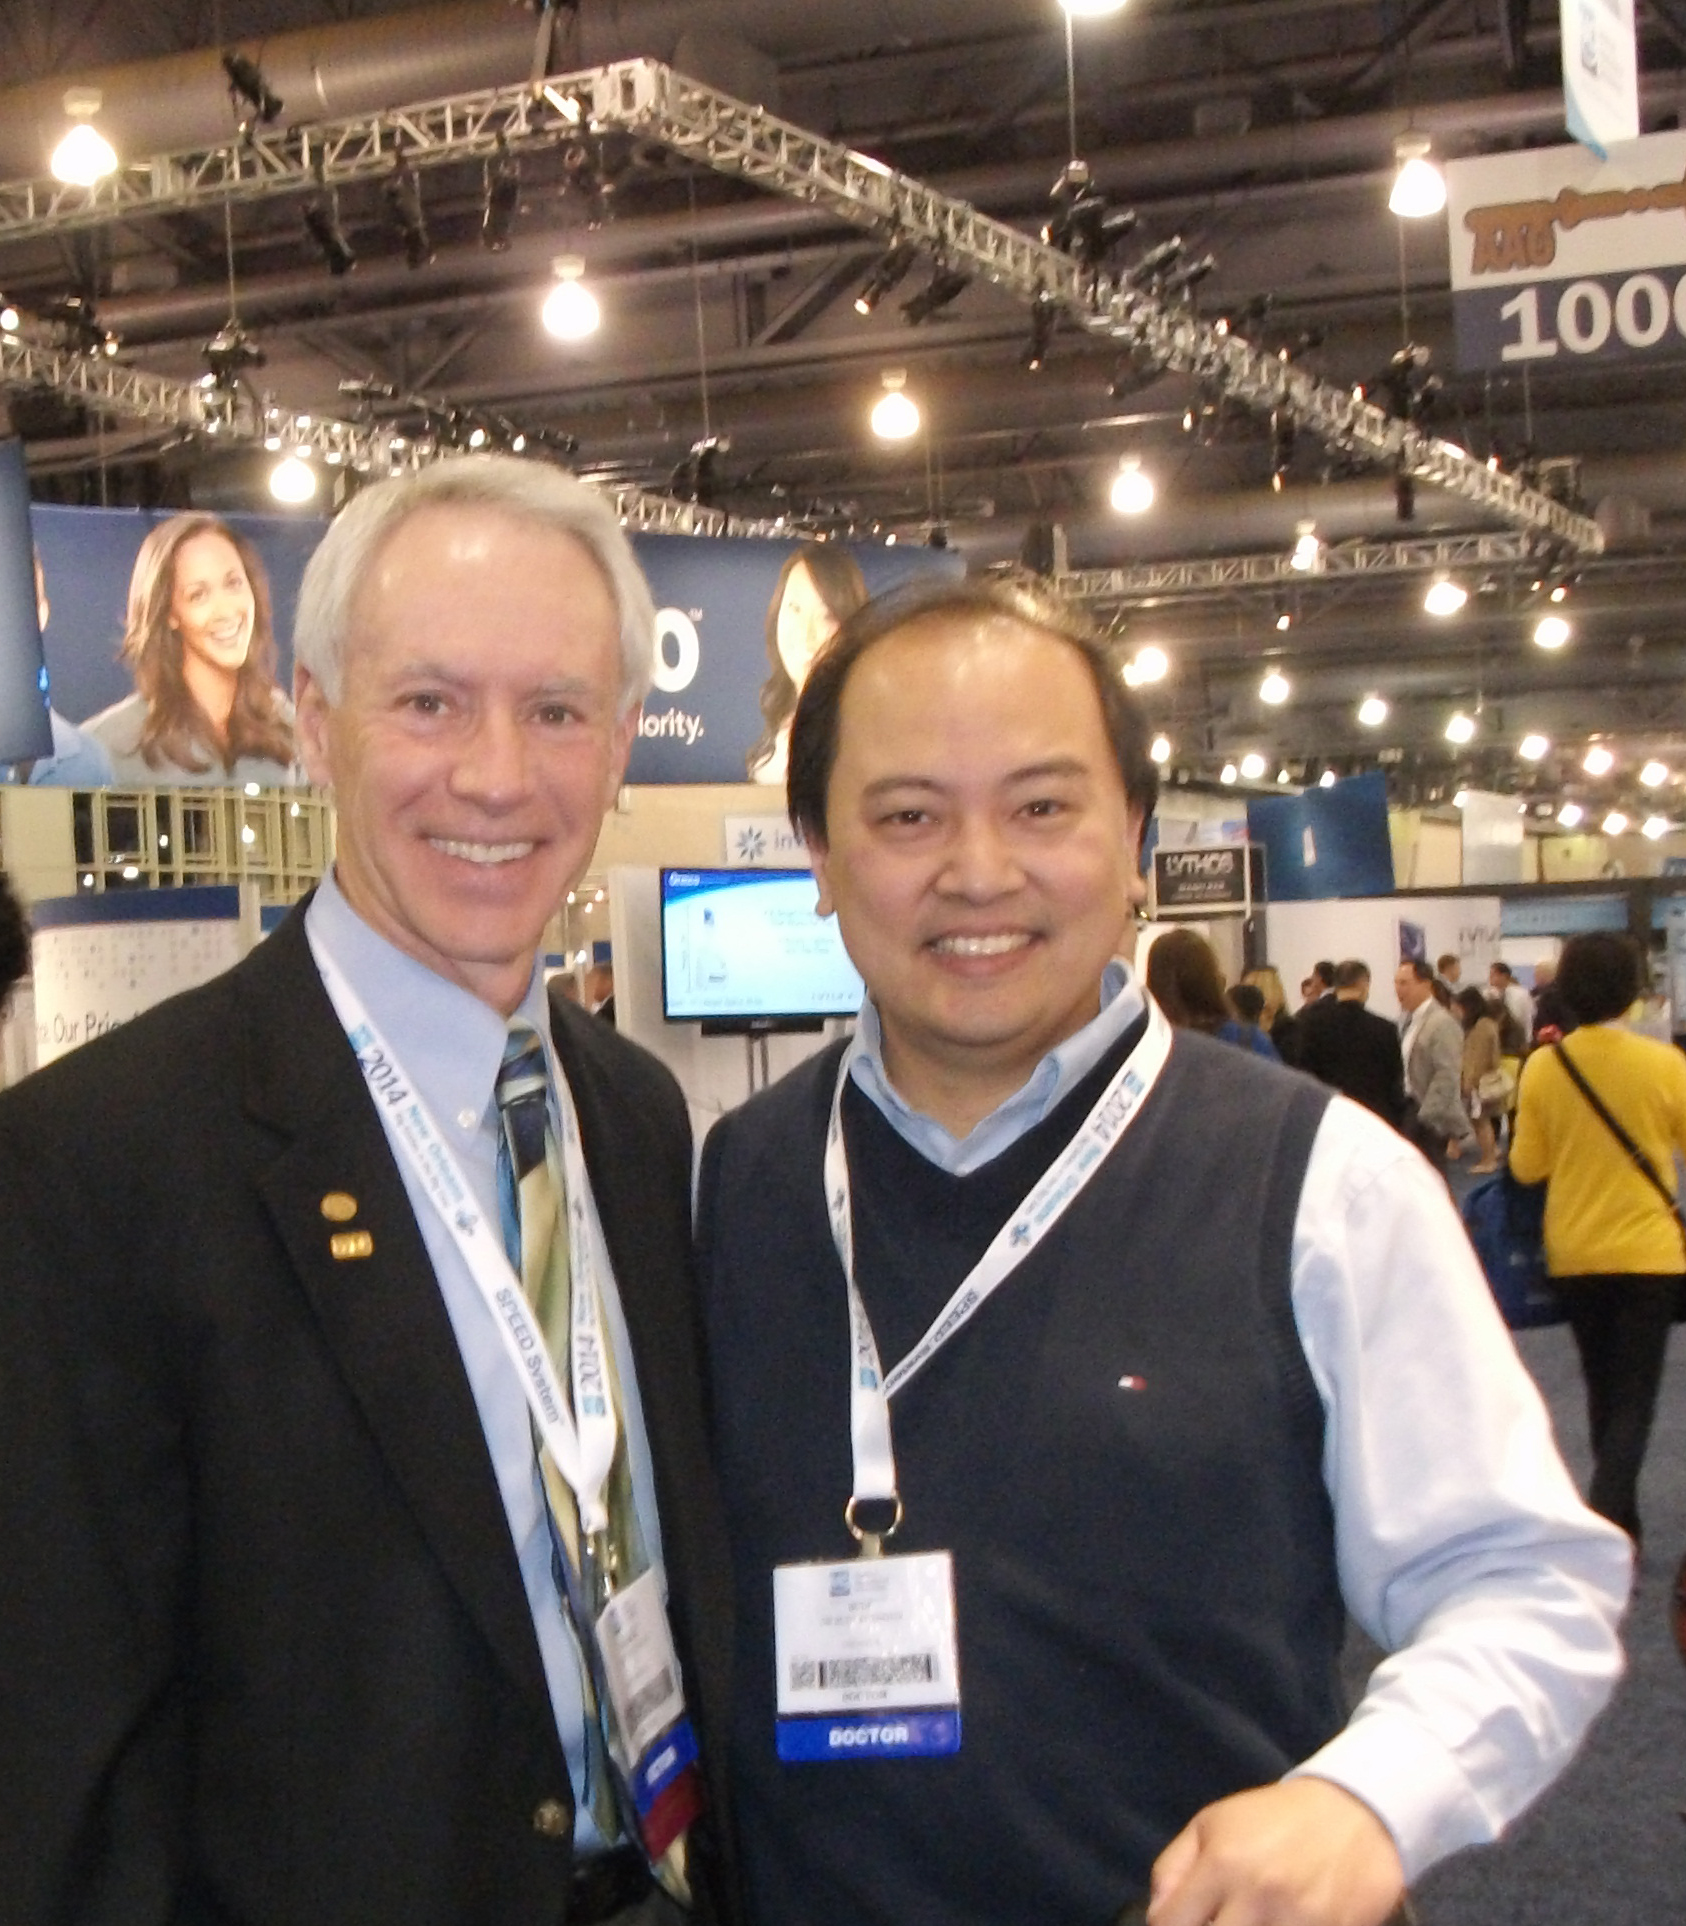 Dr Kusnoto And Dr Patrick Foley President Of Illinois Society Of